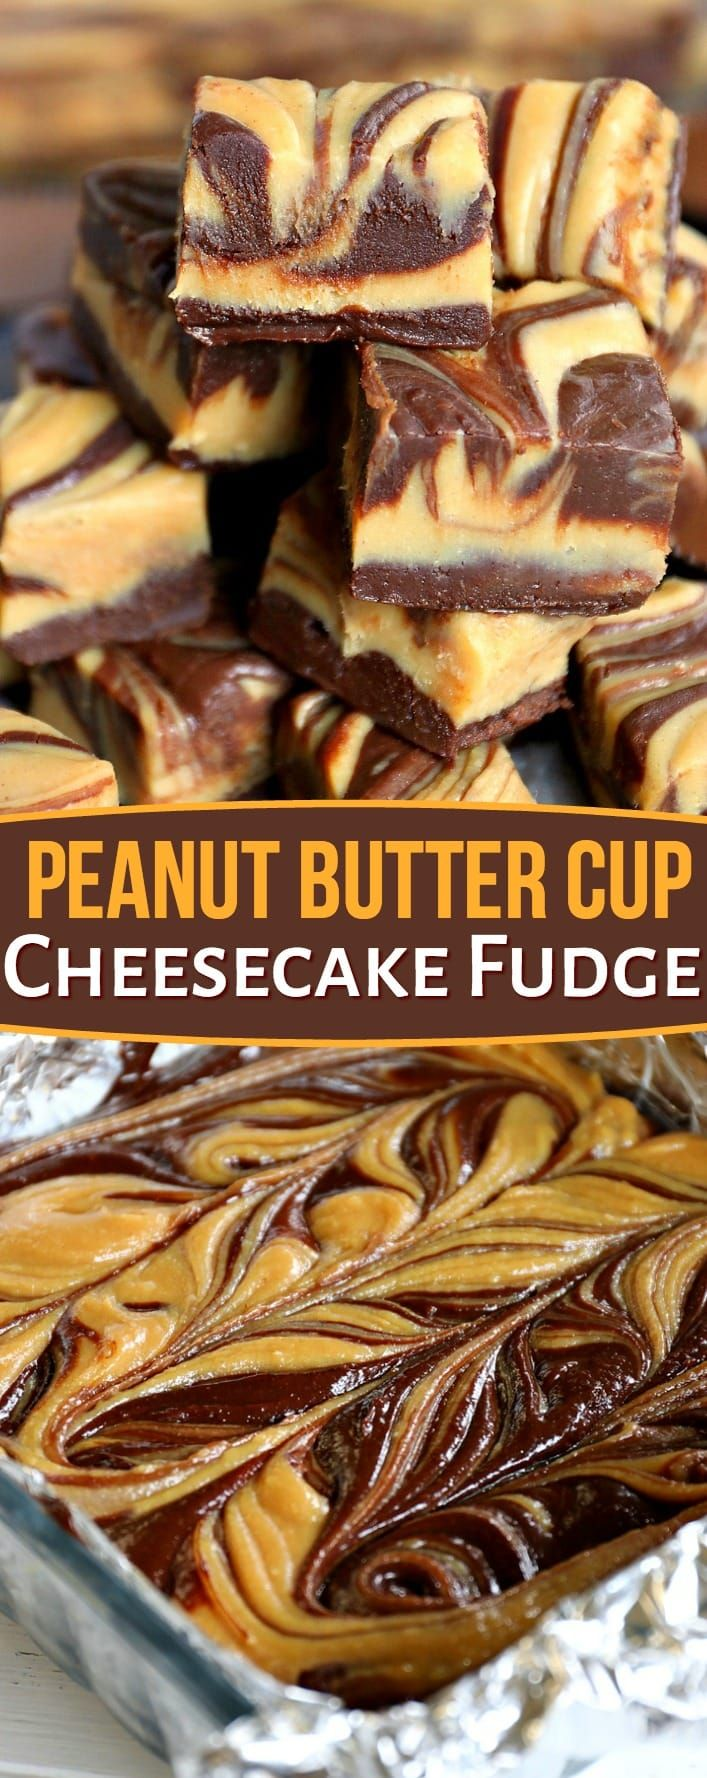 Prepare yourself for the most amazing fudge of your LIFE. This Peanut Butter Cup…